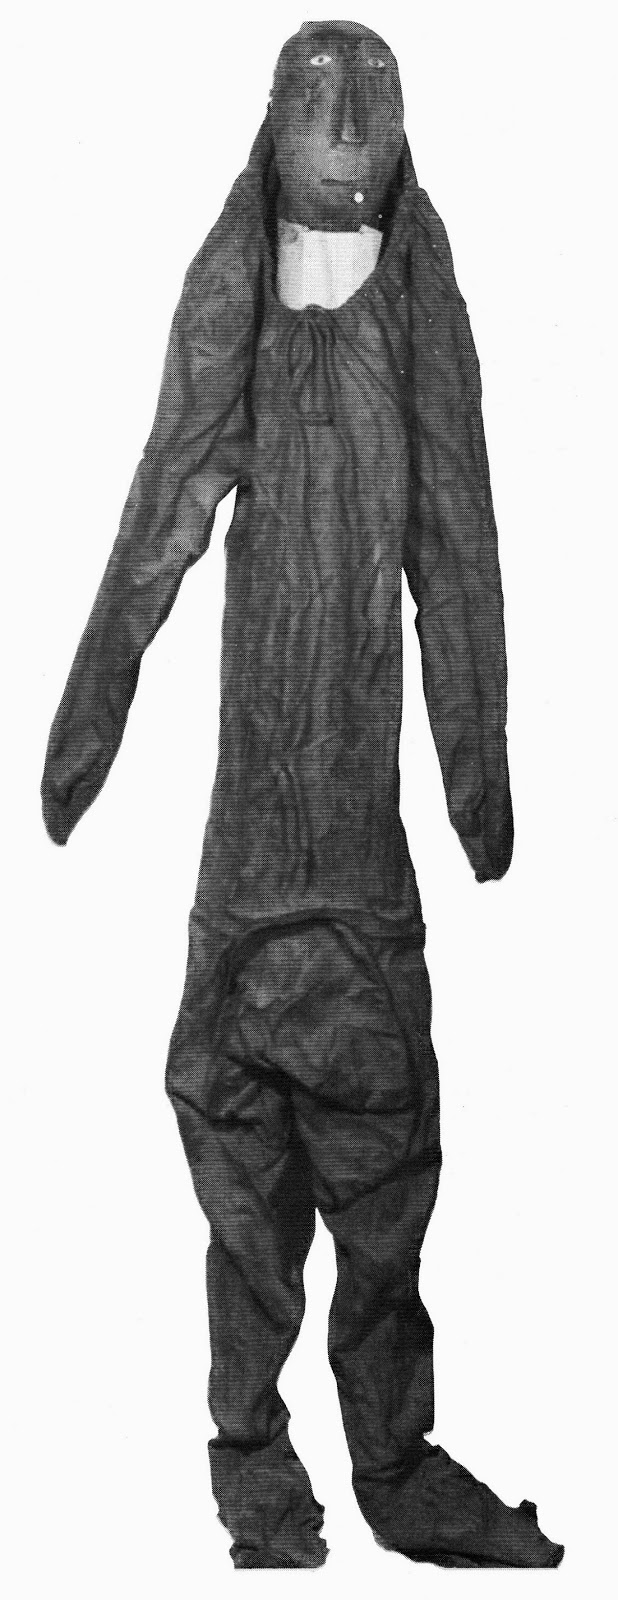 Inuit waterproof sealskin butchering suit